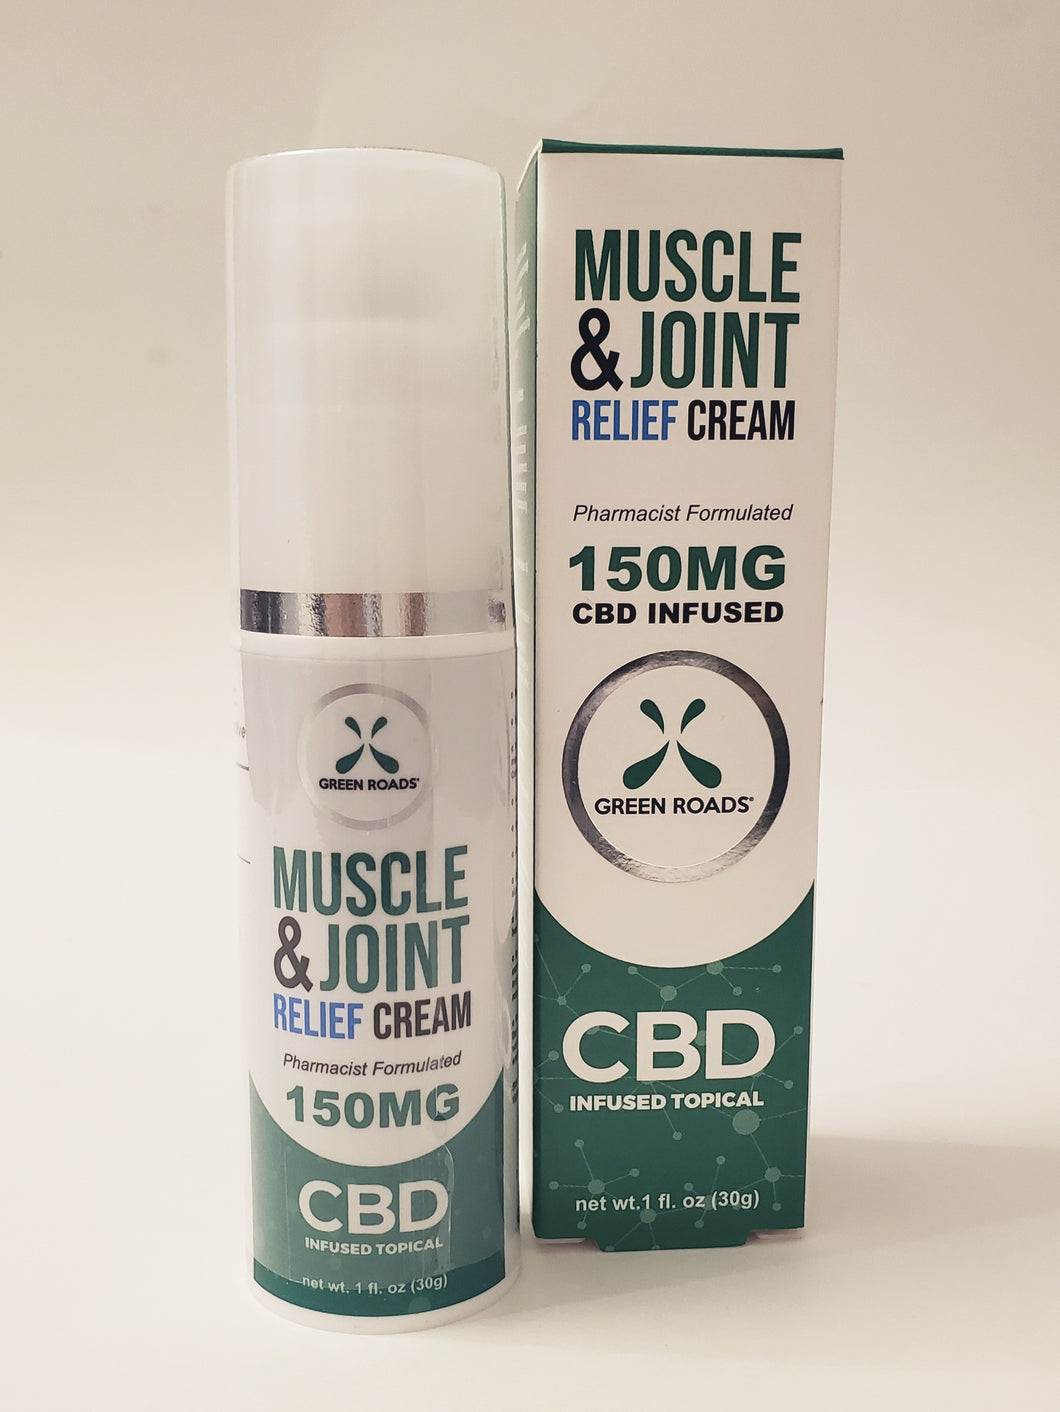 H. CBD Muscle & Joint Relief Cream 150mg